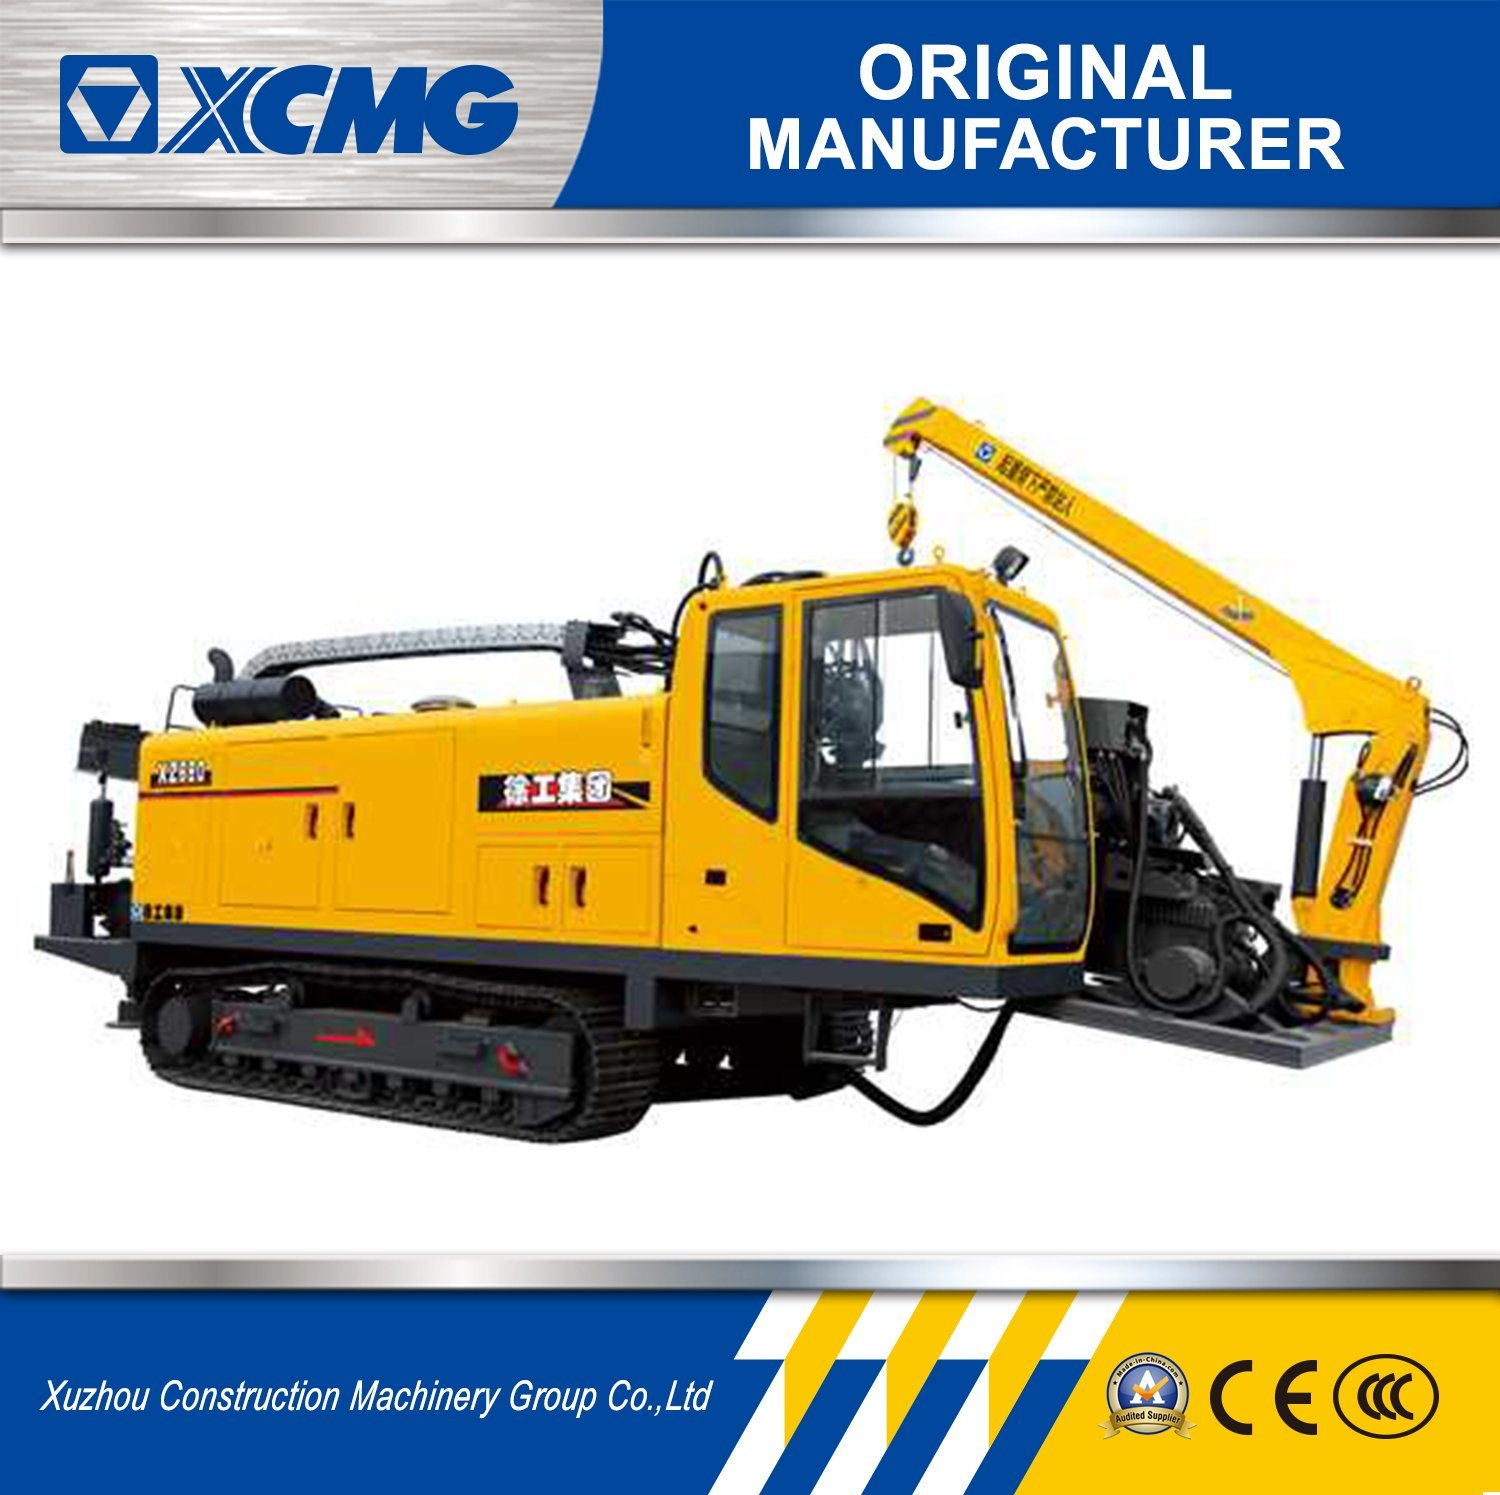 [Hot Item] XCMG Official Manufacturer Xz680 Horizontal Directional Drilling  Rig